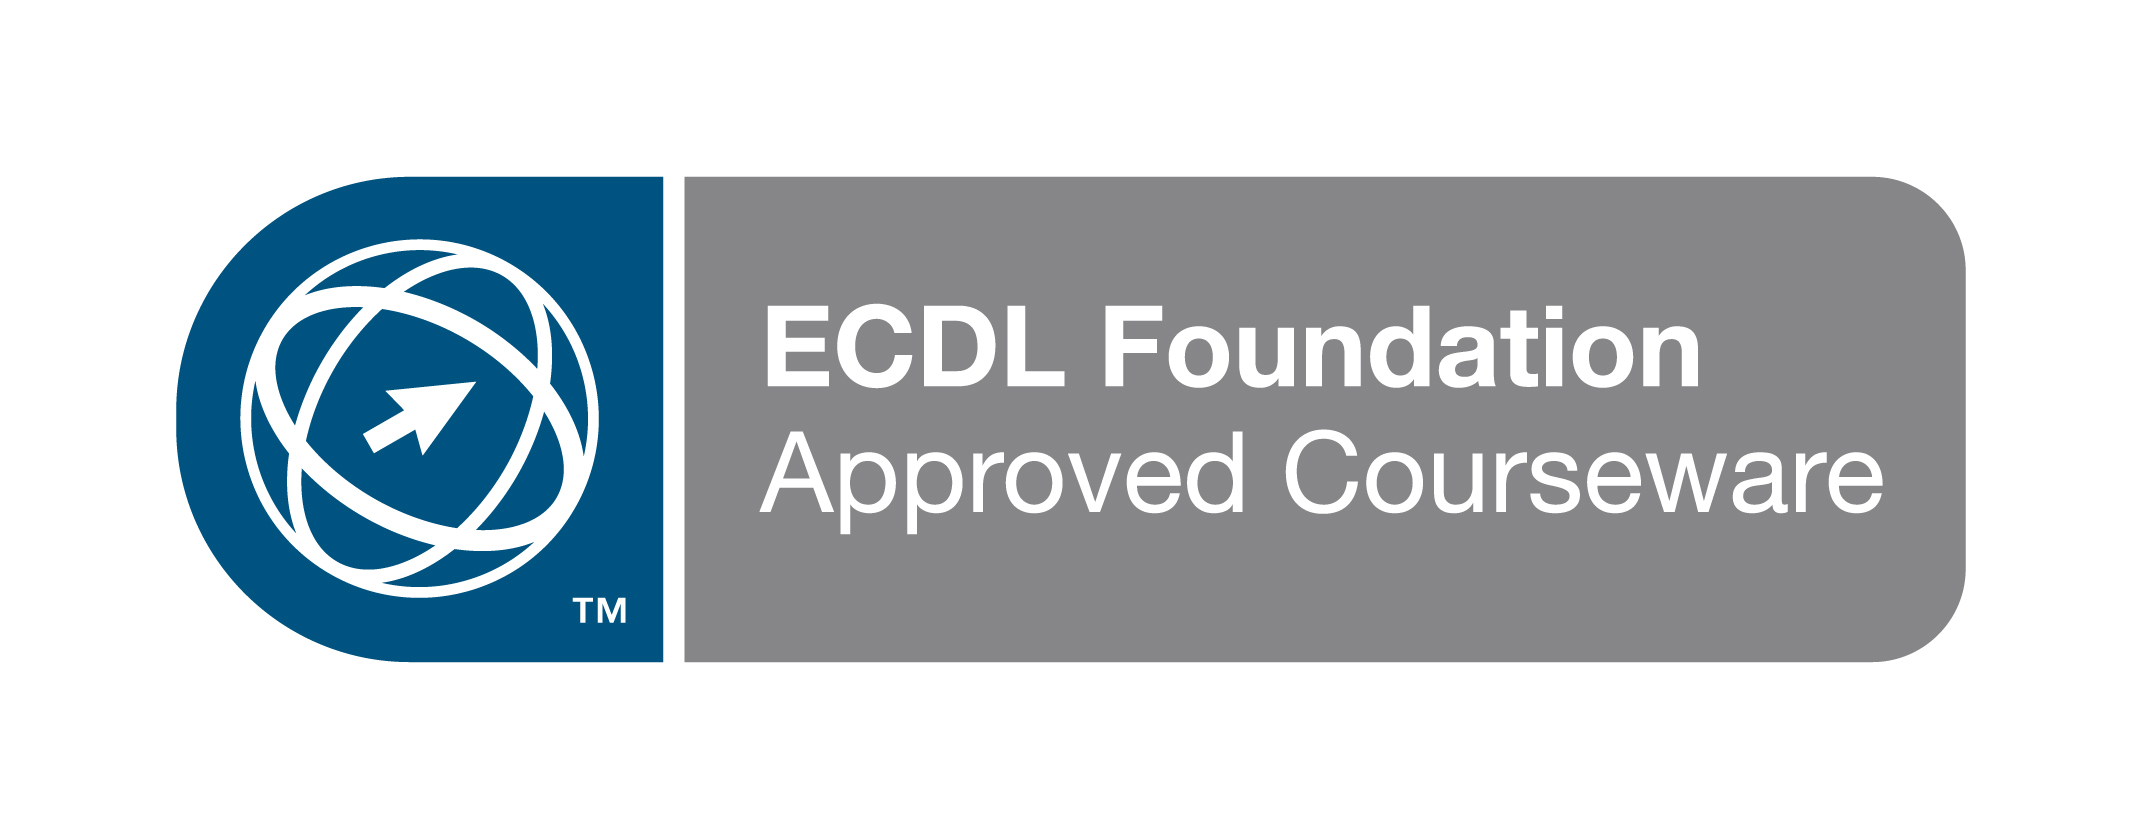 ECDL Approved Courseware